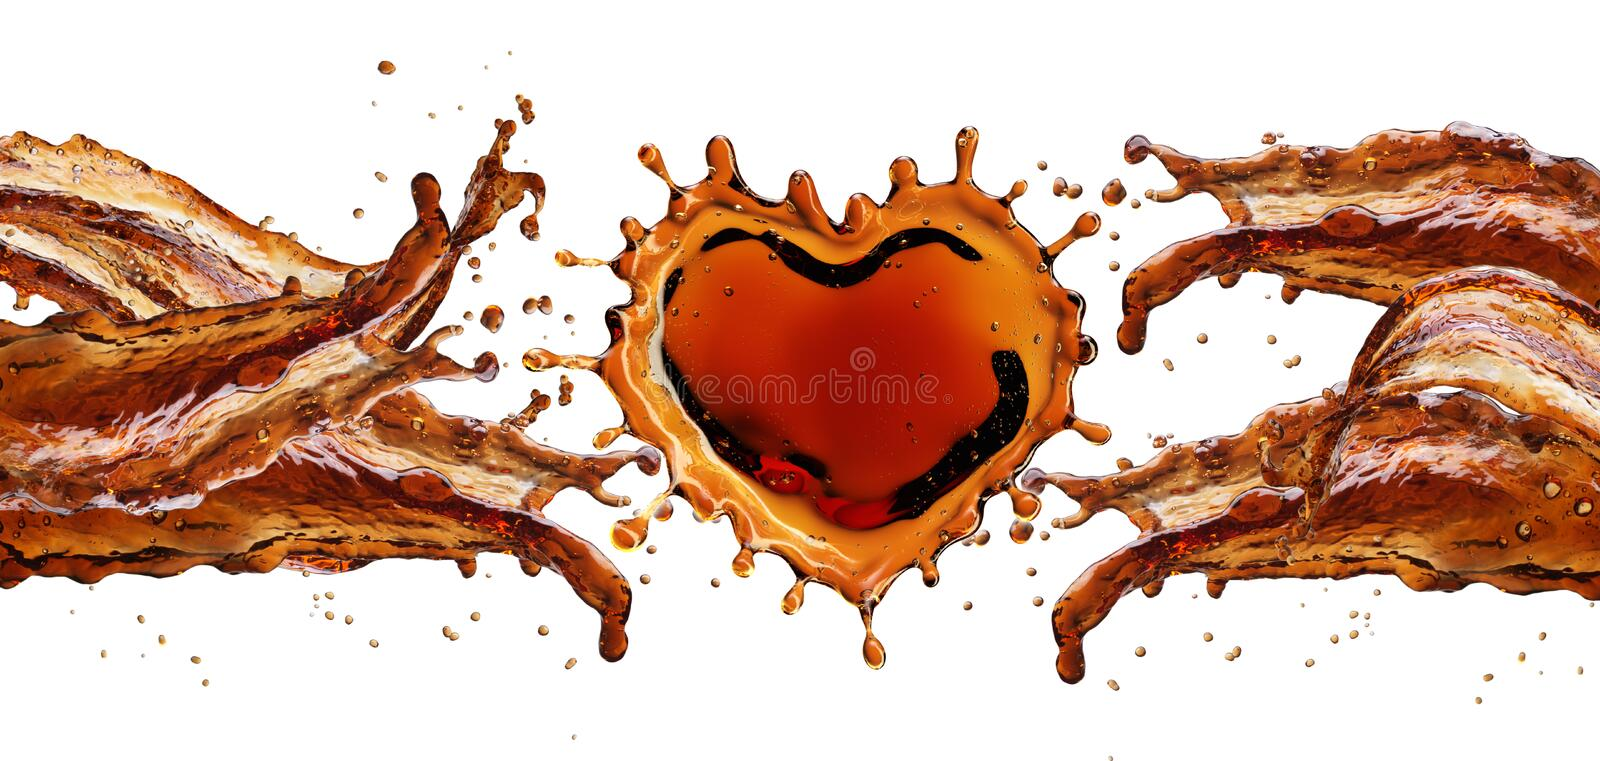 Download Heart From Cola Splash With Bubbles Isolated On White Stock Photo - Image of flowing, life: 101494900